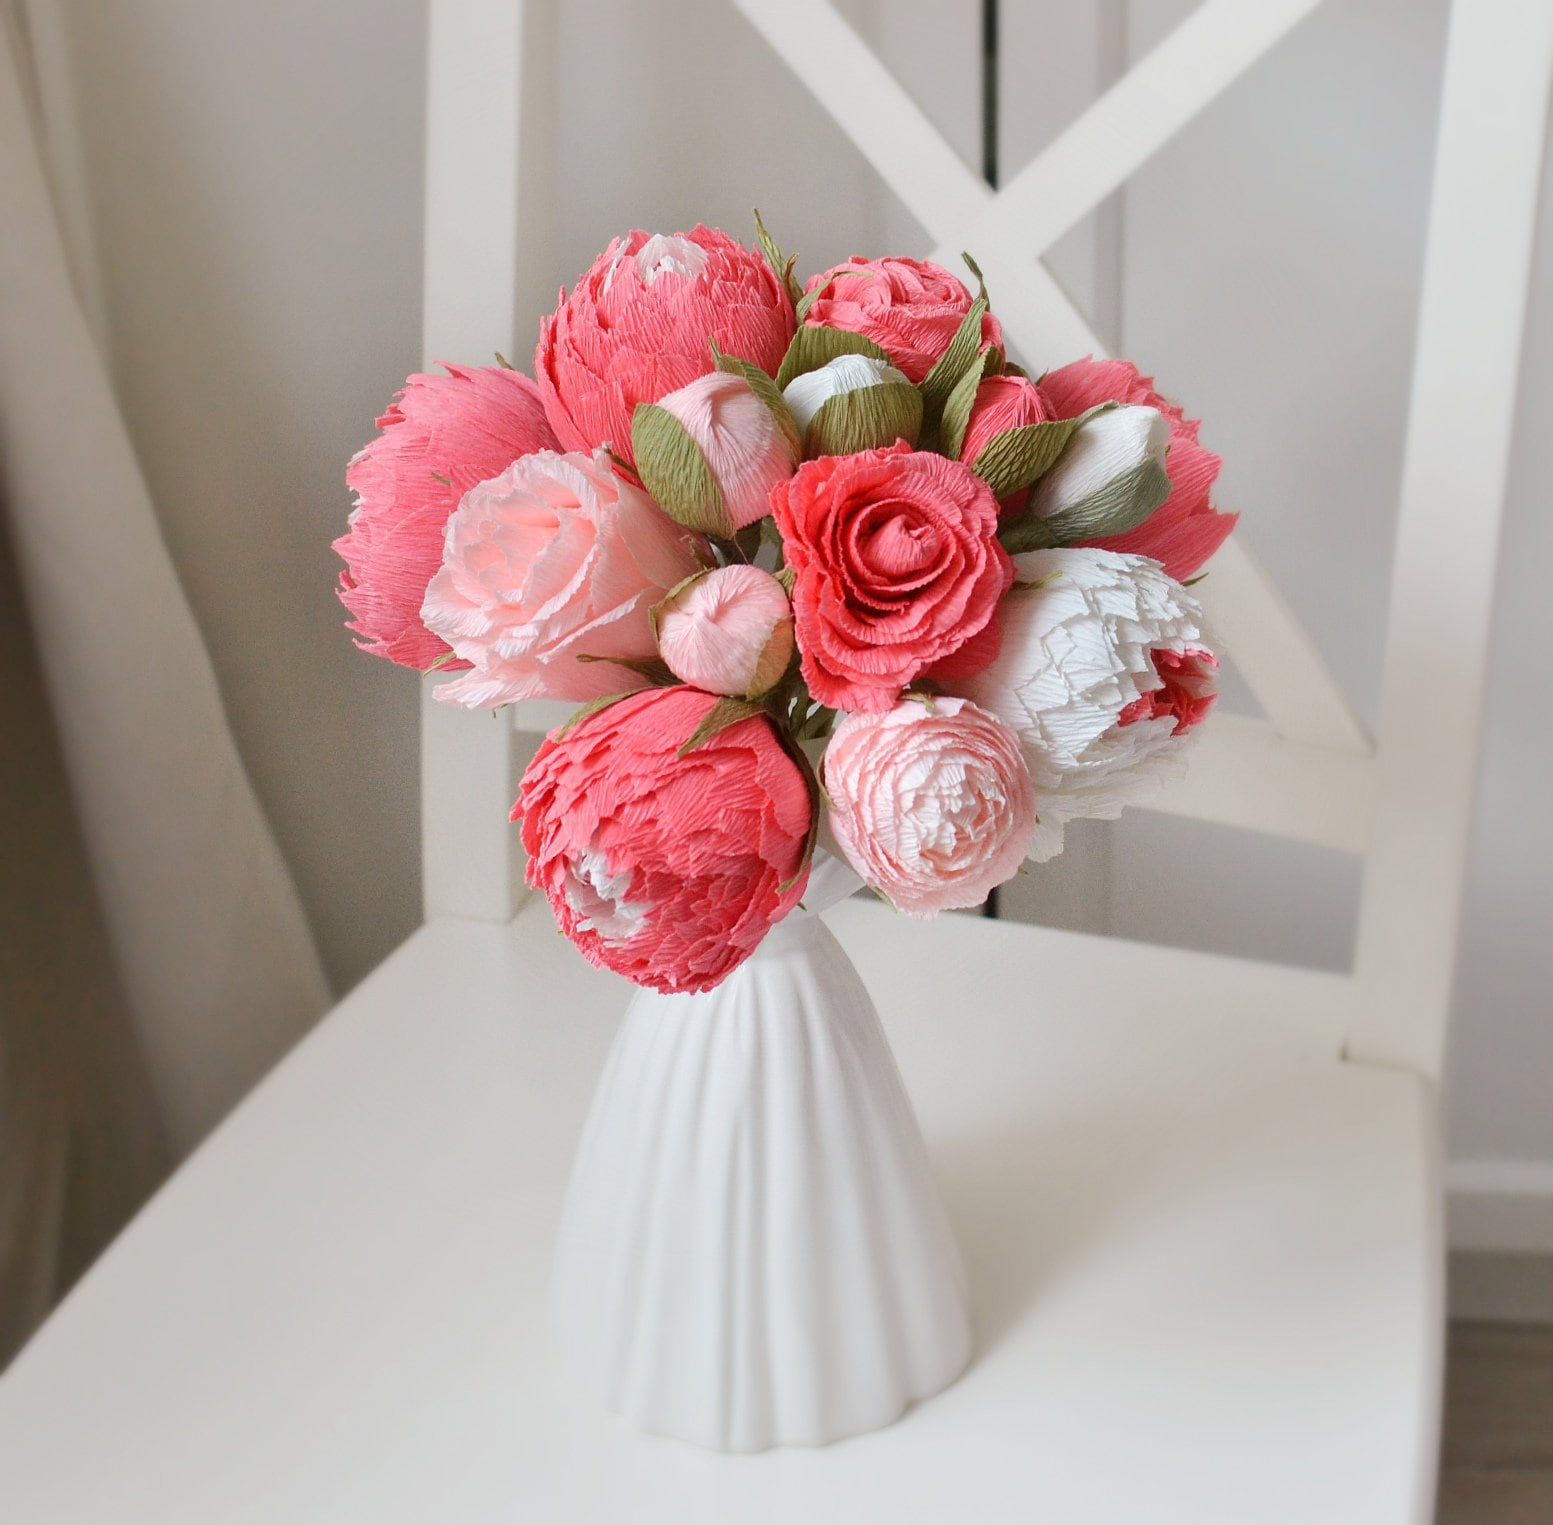 15 pcs Wedding Paper Peonies Coral Home Decor Pink Flowers